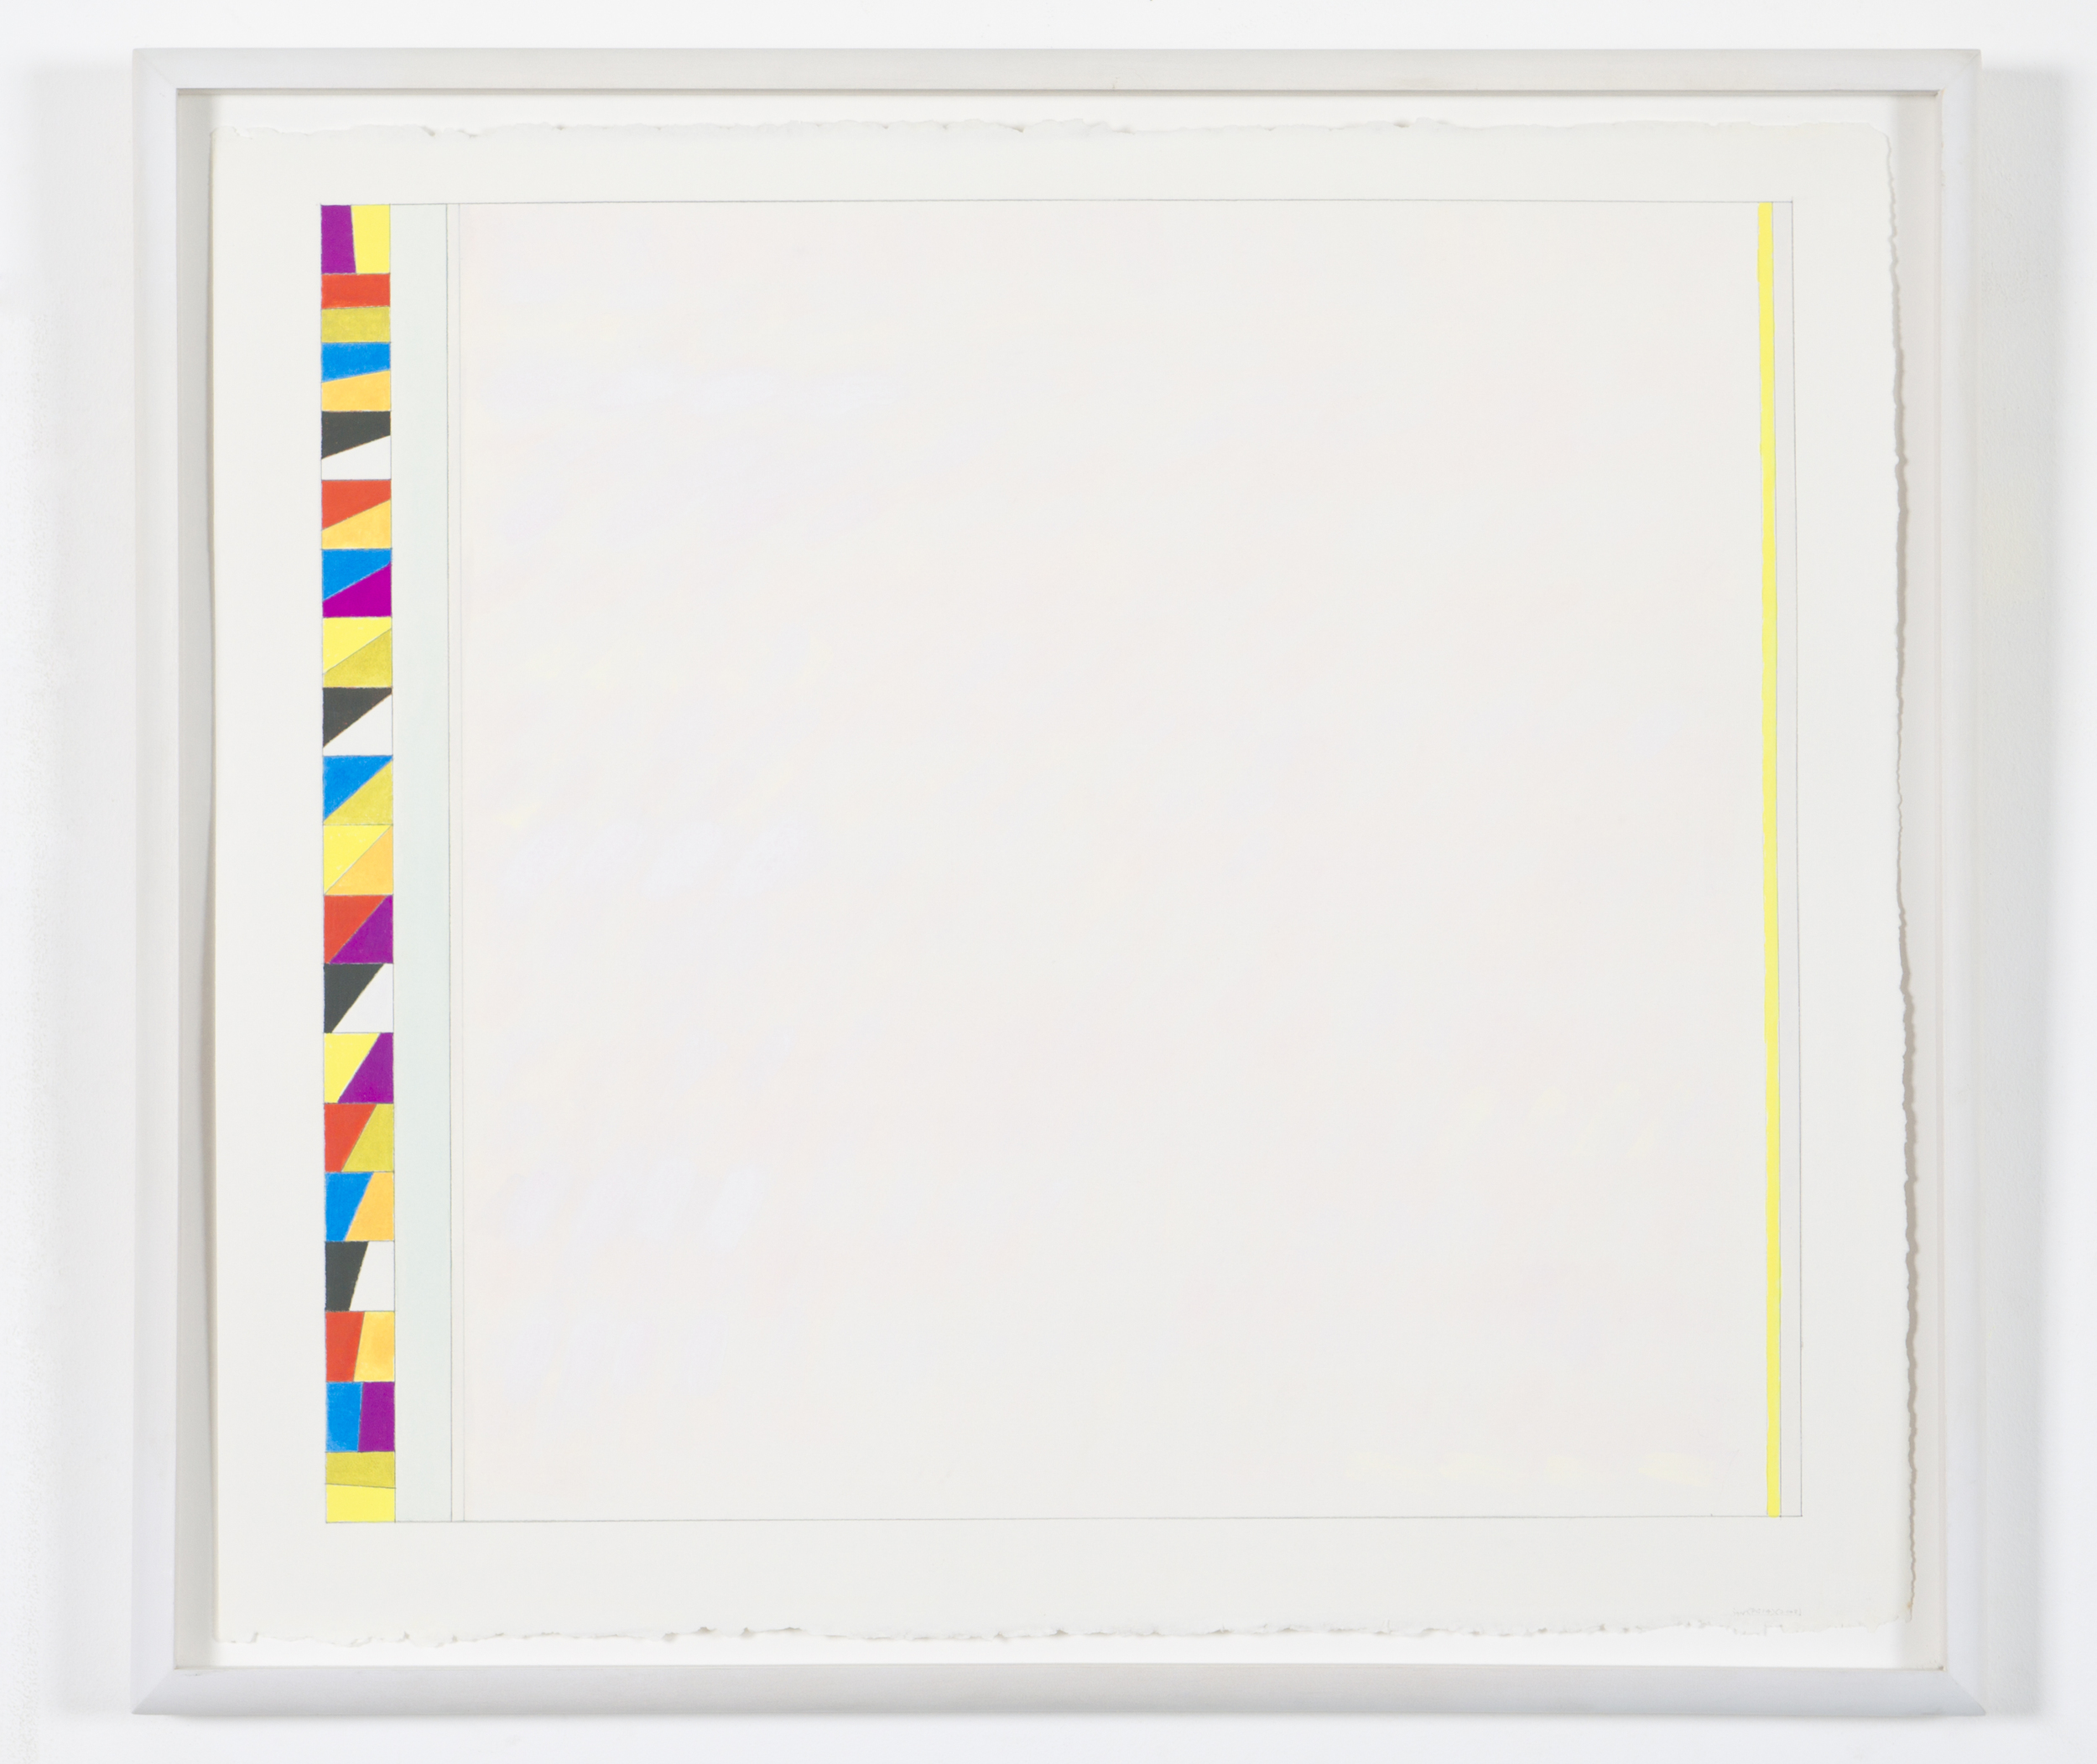 """Untitled (PG 14), 2002, gouache on paper, 20 3/16""""x22 5/8""""(image), 23 1/8""""x26"""" (paper)"""